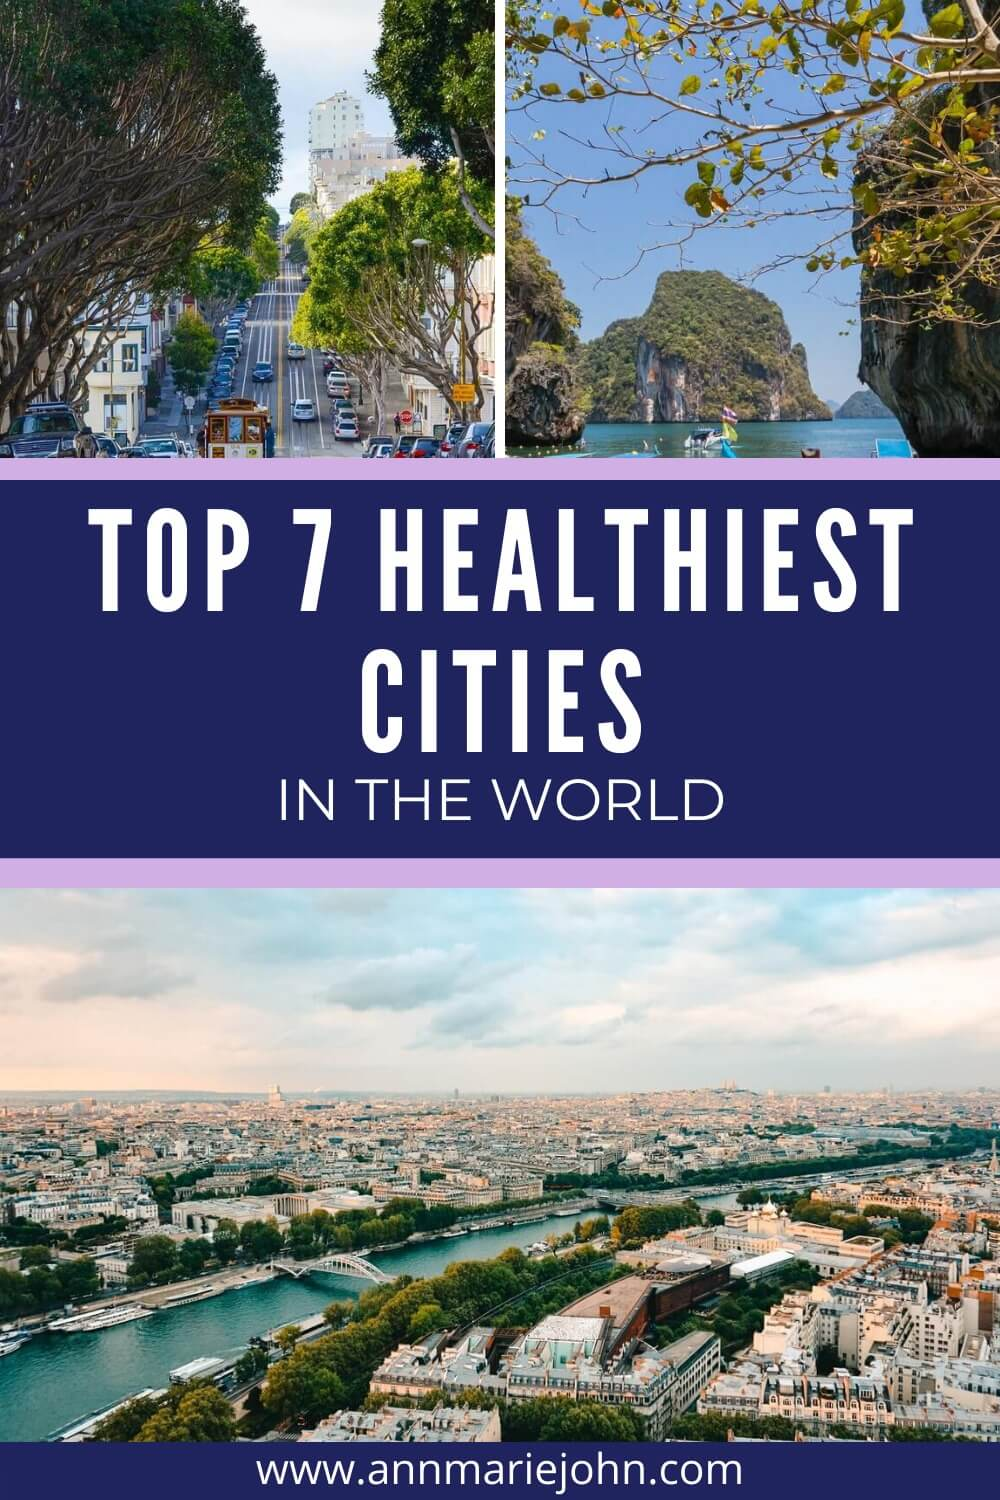 Top 7 Healthiest Cities